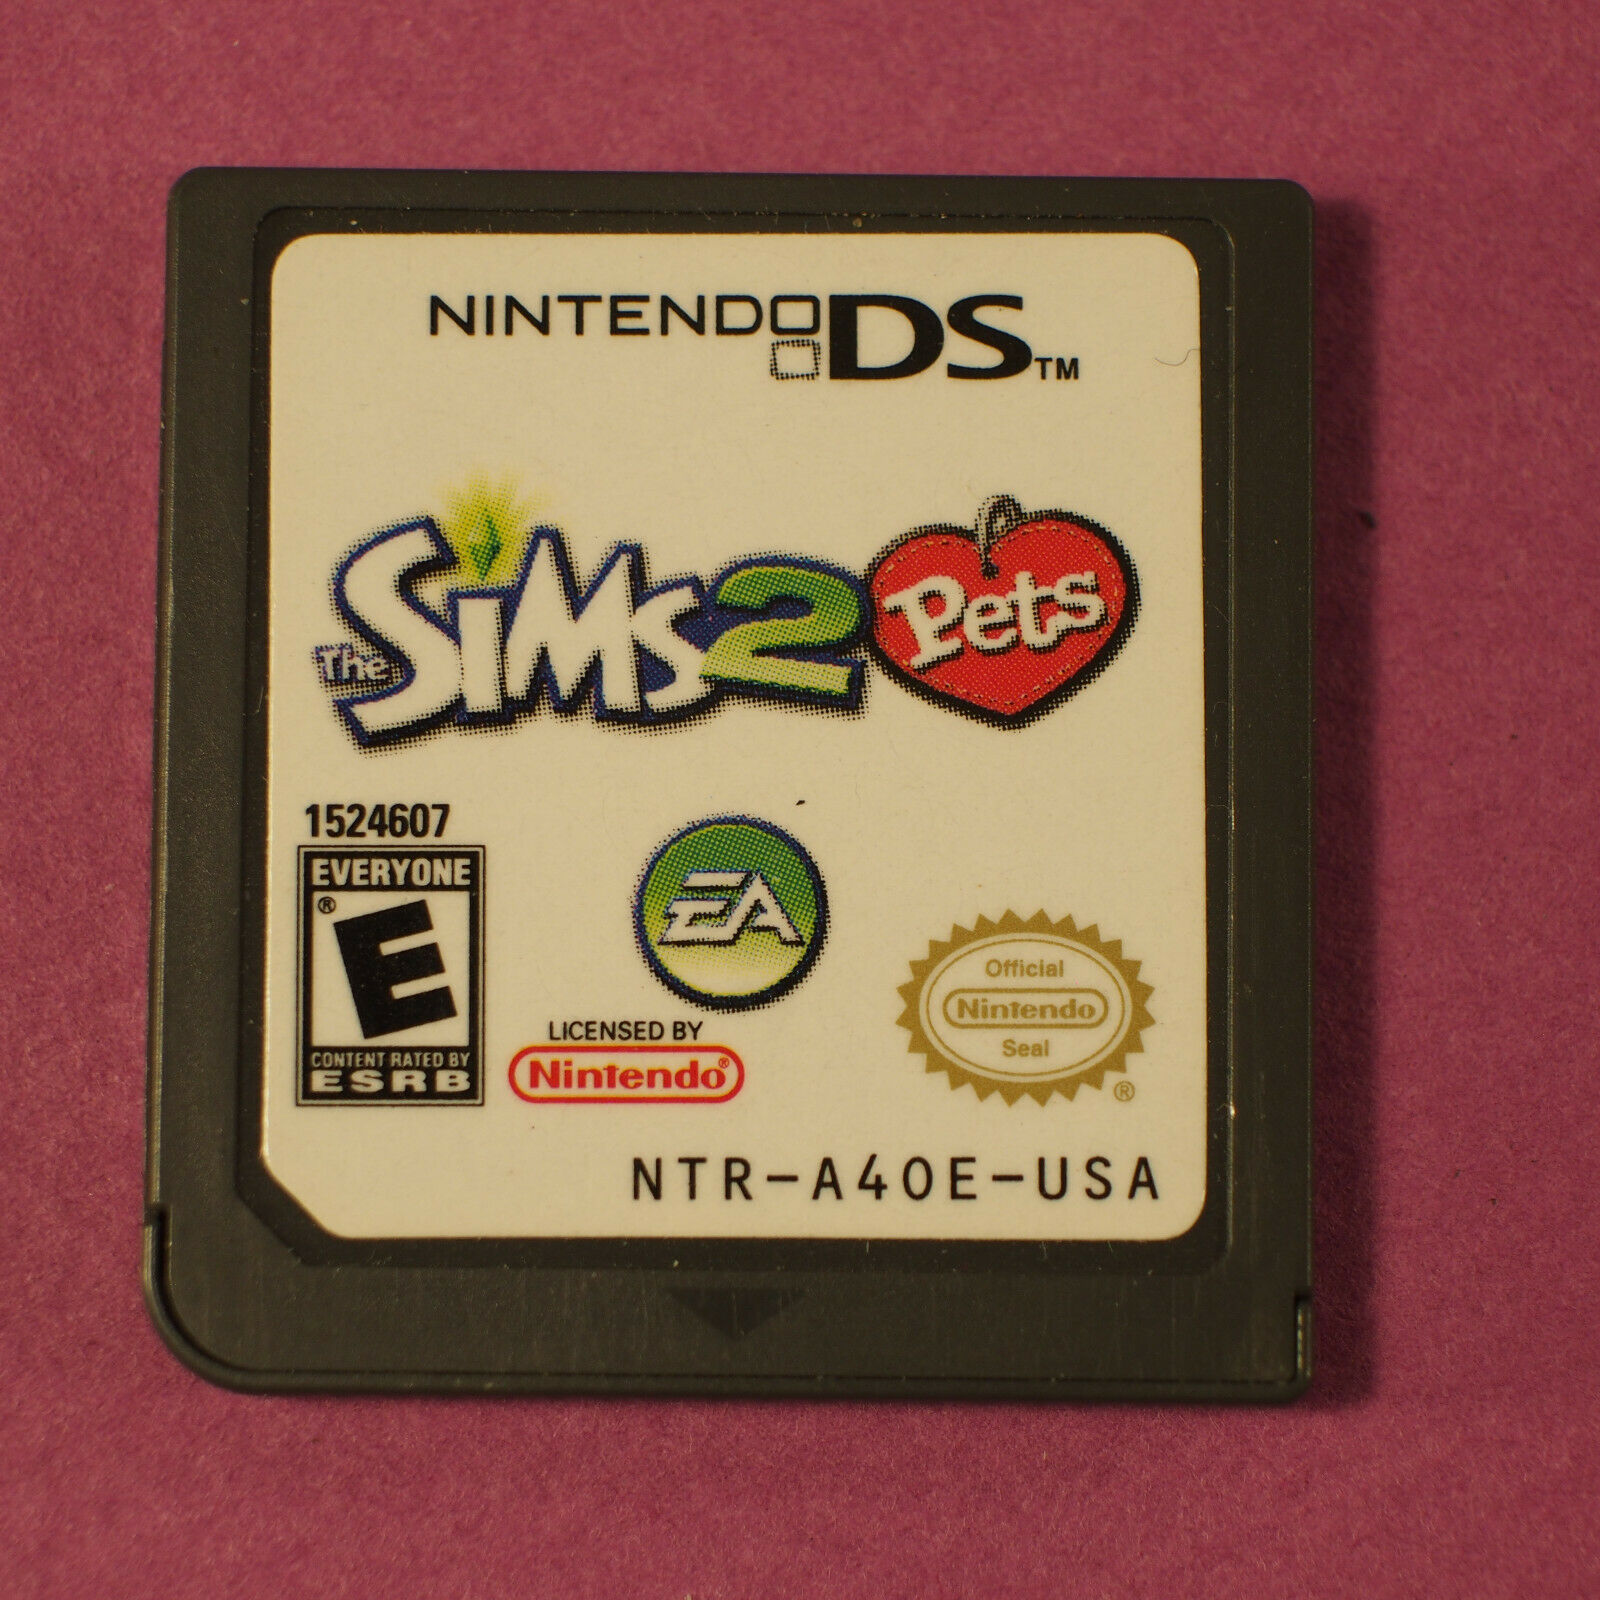 Primary image for The Sims 2: Pets (Nintendo DS, 2006) - Cart Only